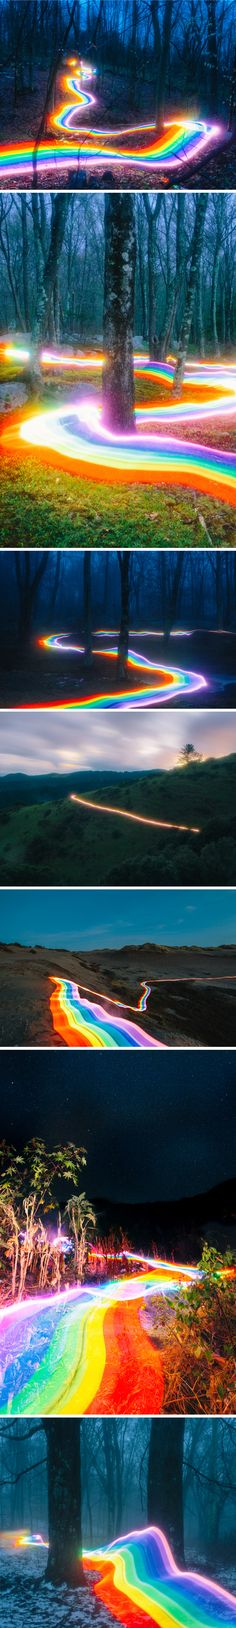 """Rainbow Roads"" - photography by daniel mercadante"